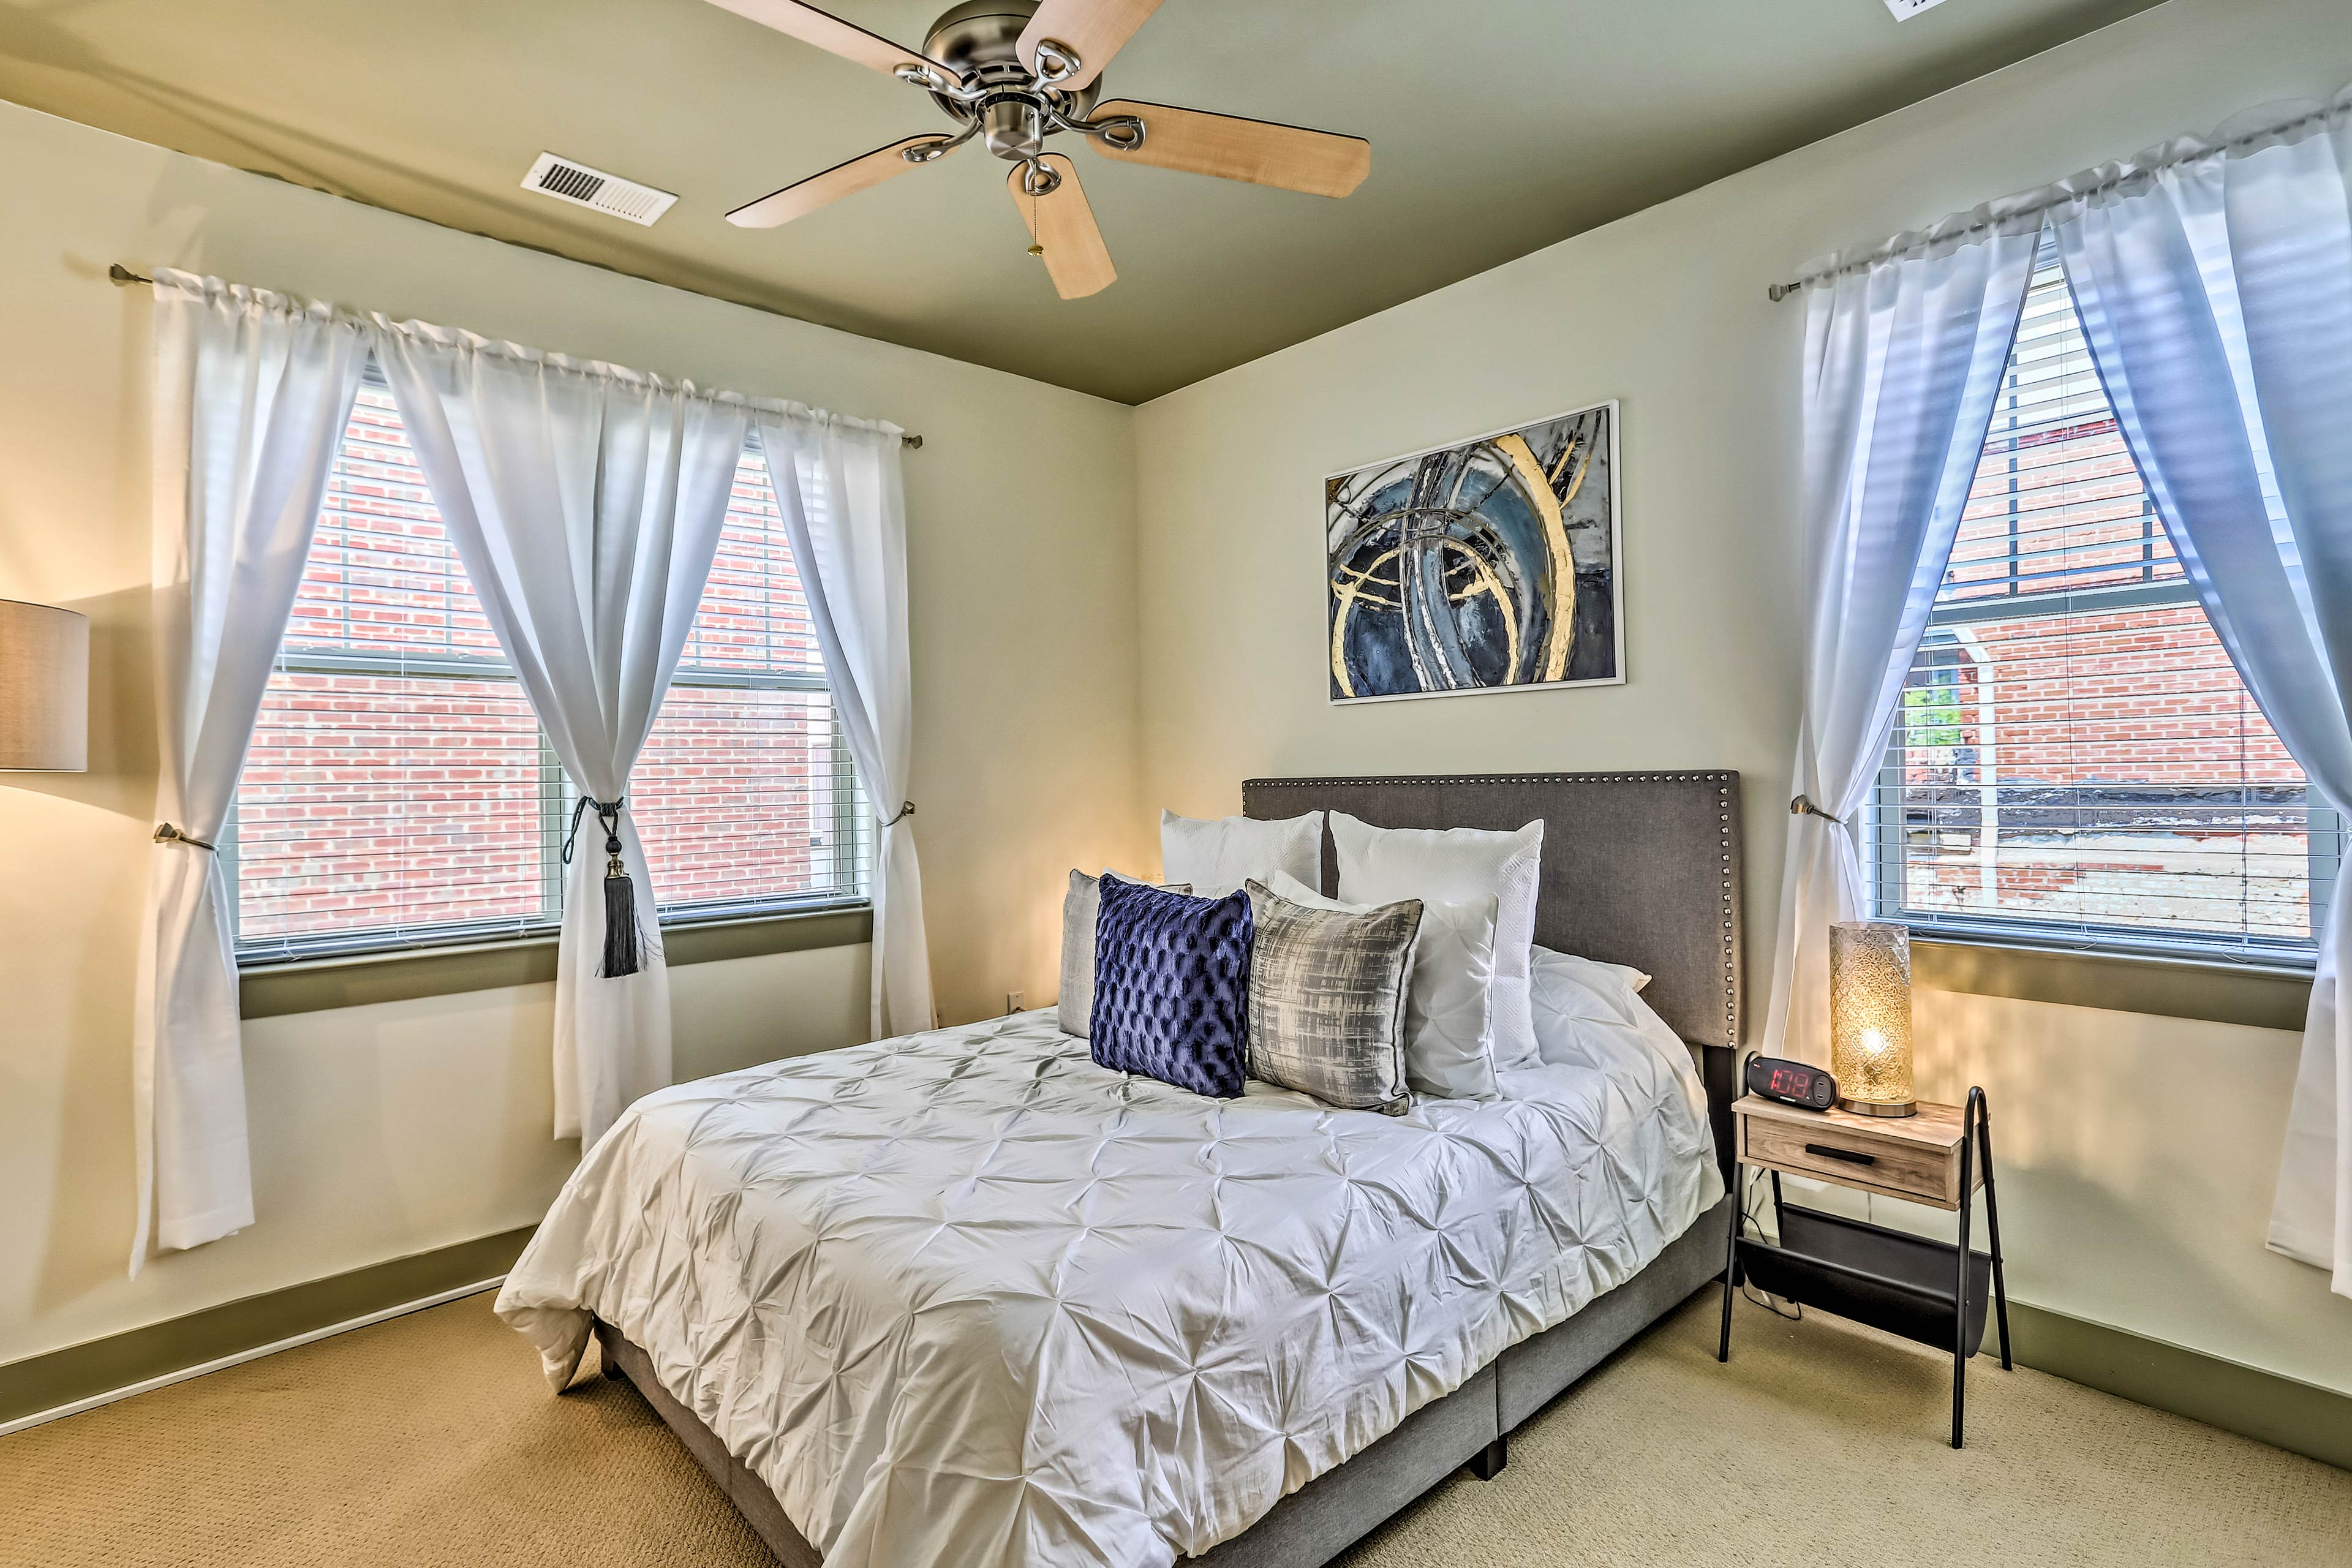 The master bedroom includes a queen bed for 2!